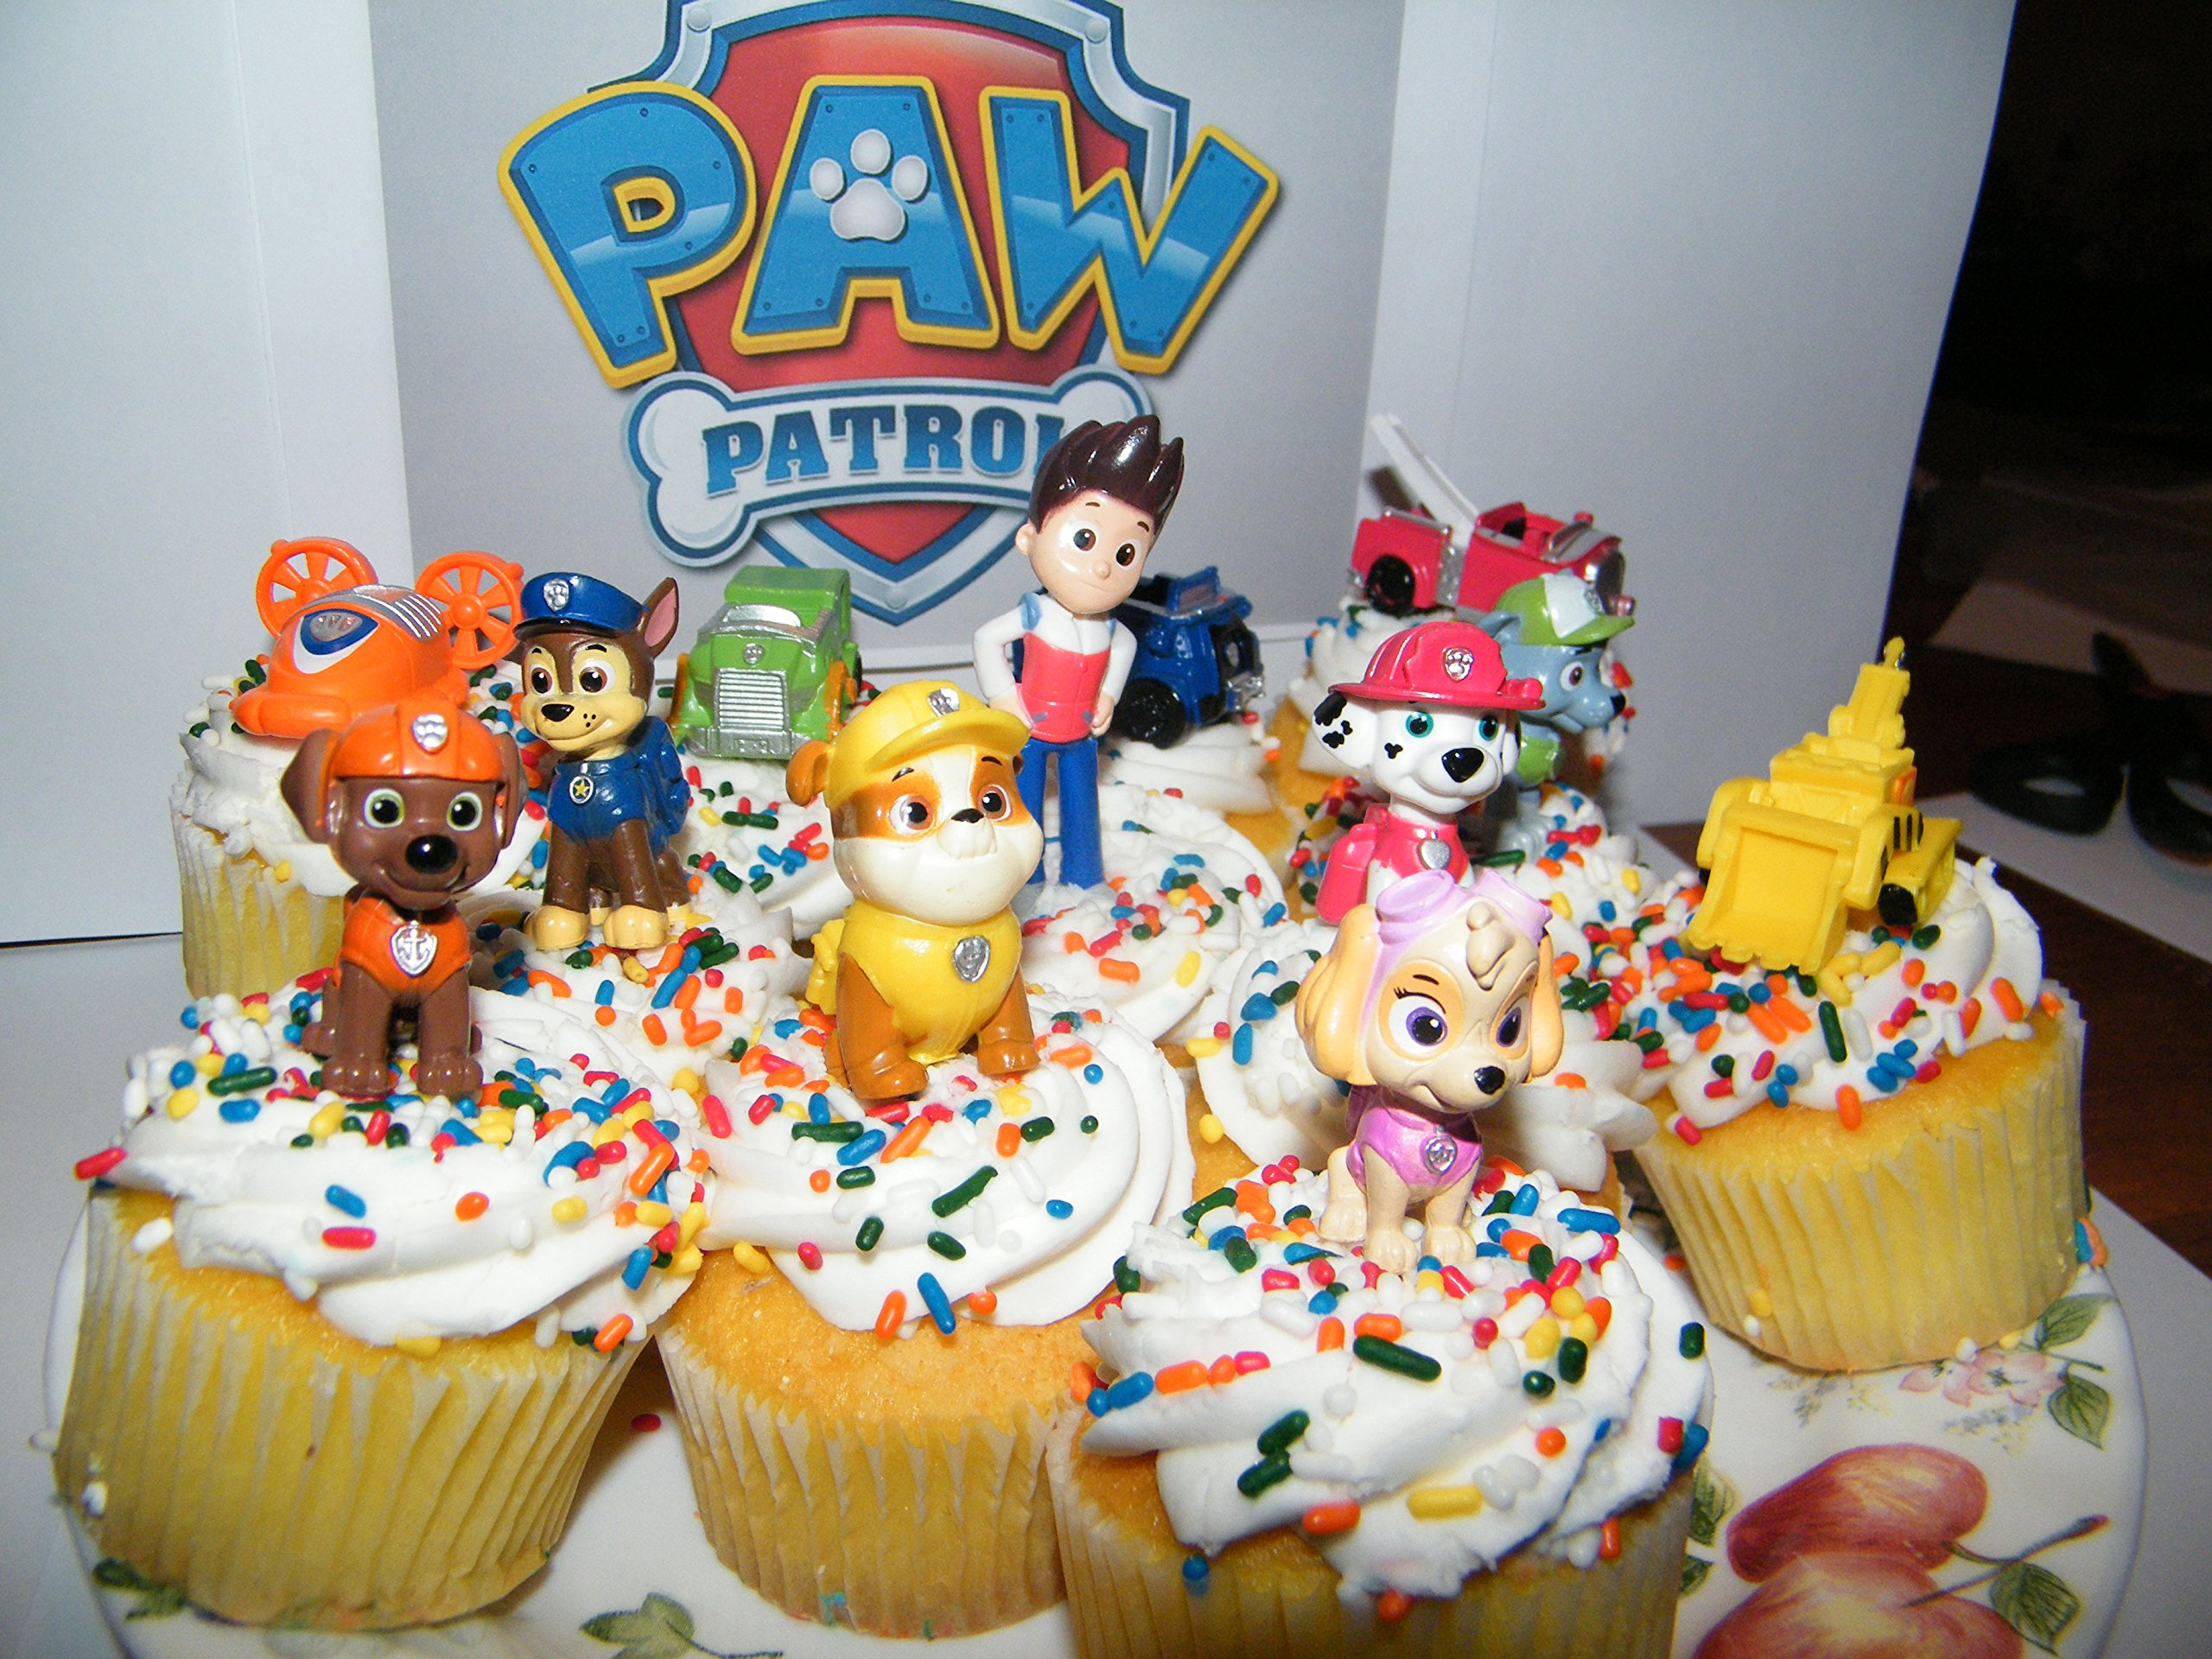 Nickelodeon PAW Patrol Figure Set of 12 Deluxe Mini Cake Toppers Cupcake Decorations Party favors Featuring Ryder, Marshall, Chase, Skye, 5 Vehicles and Special Gift by Paw Patrol (Image #3)